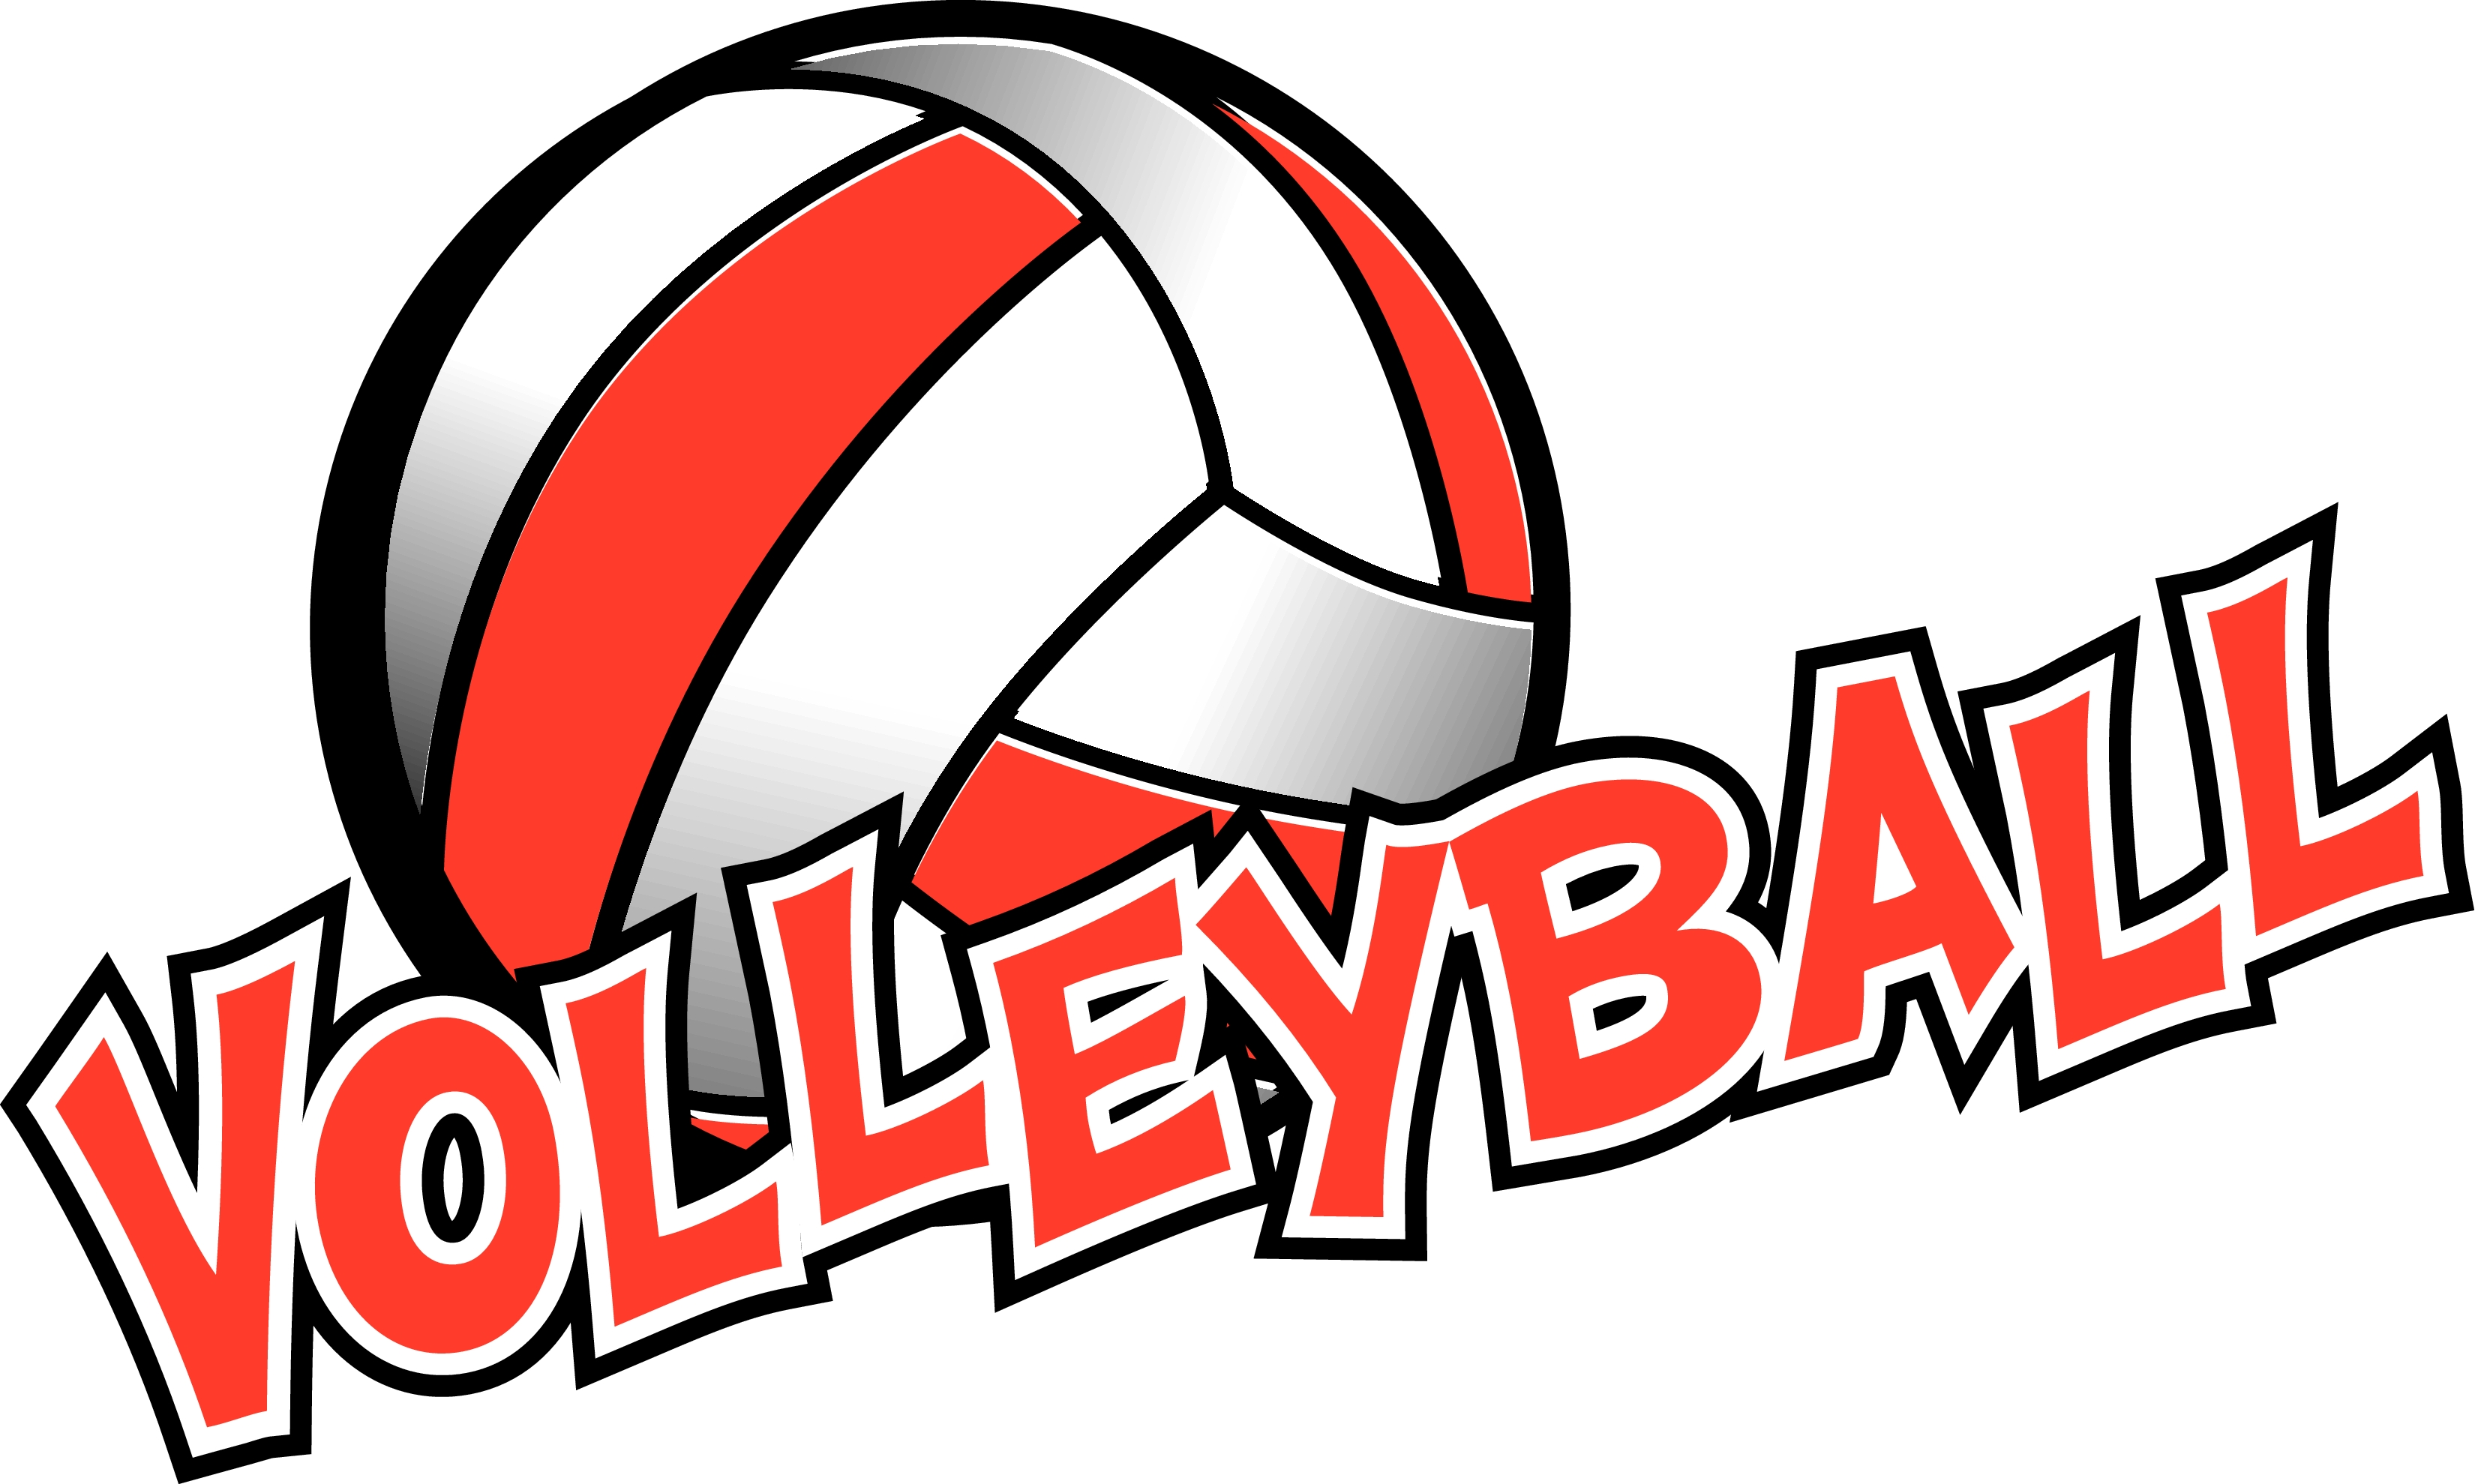 Volleyball clipart high school volleyball. Free summer cliparts download